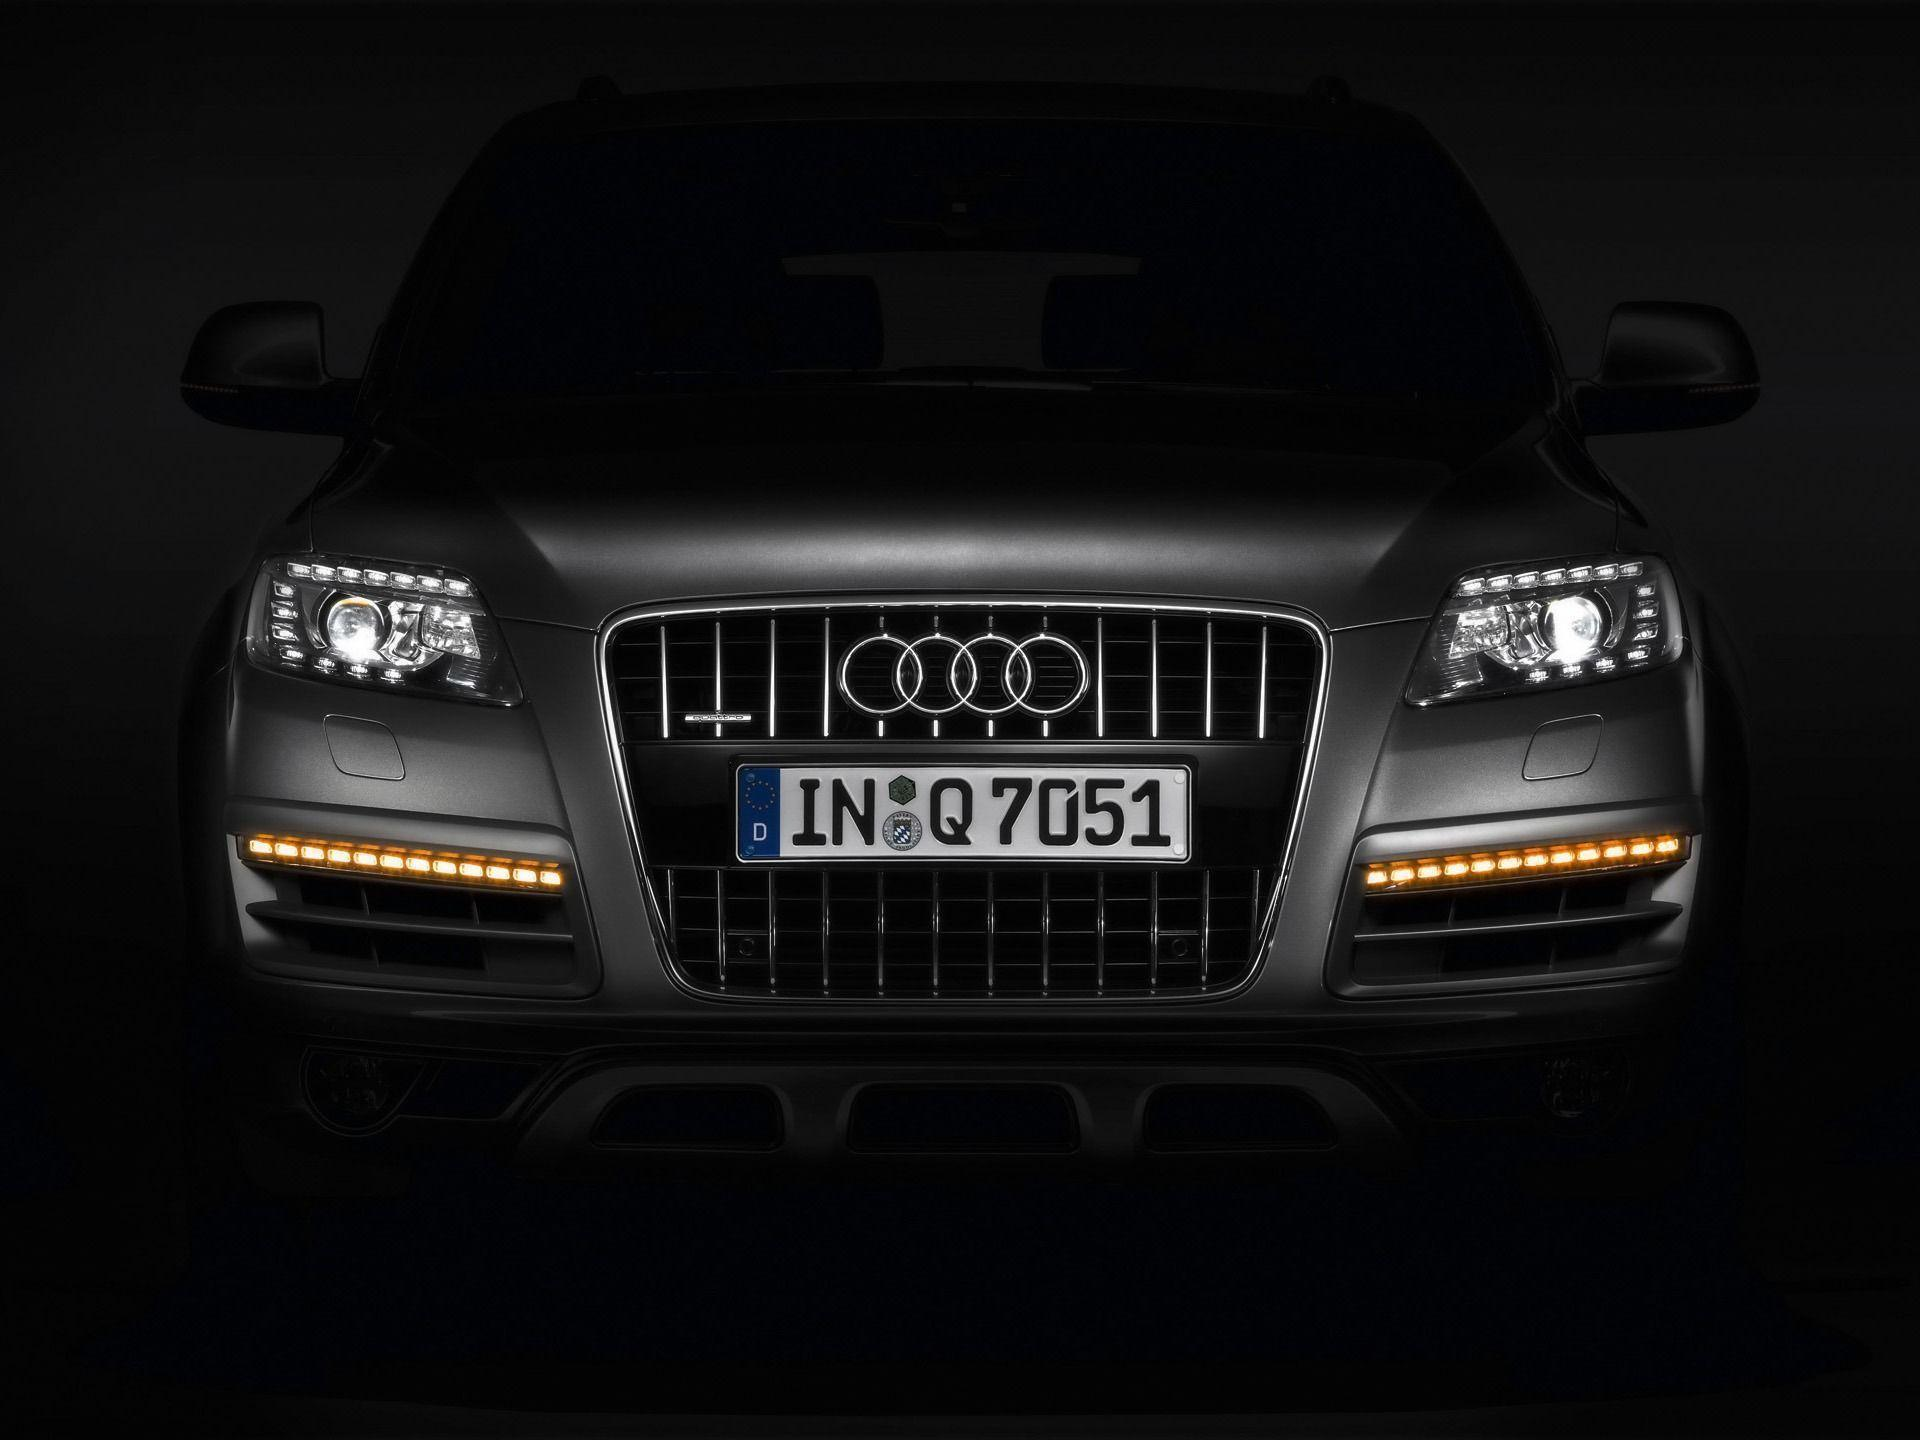 Q7 Wallpapers Audi Cars Wallpapers in jpg format for free download